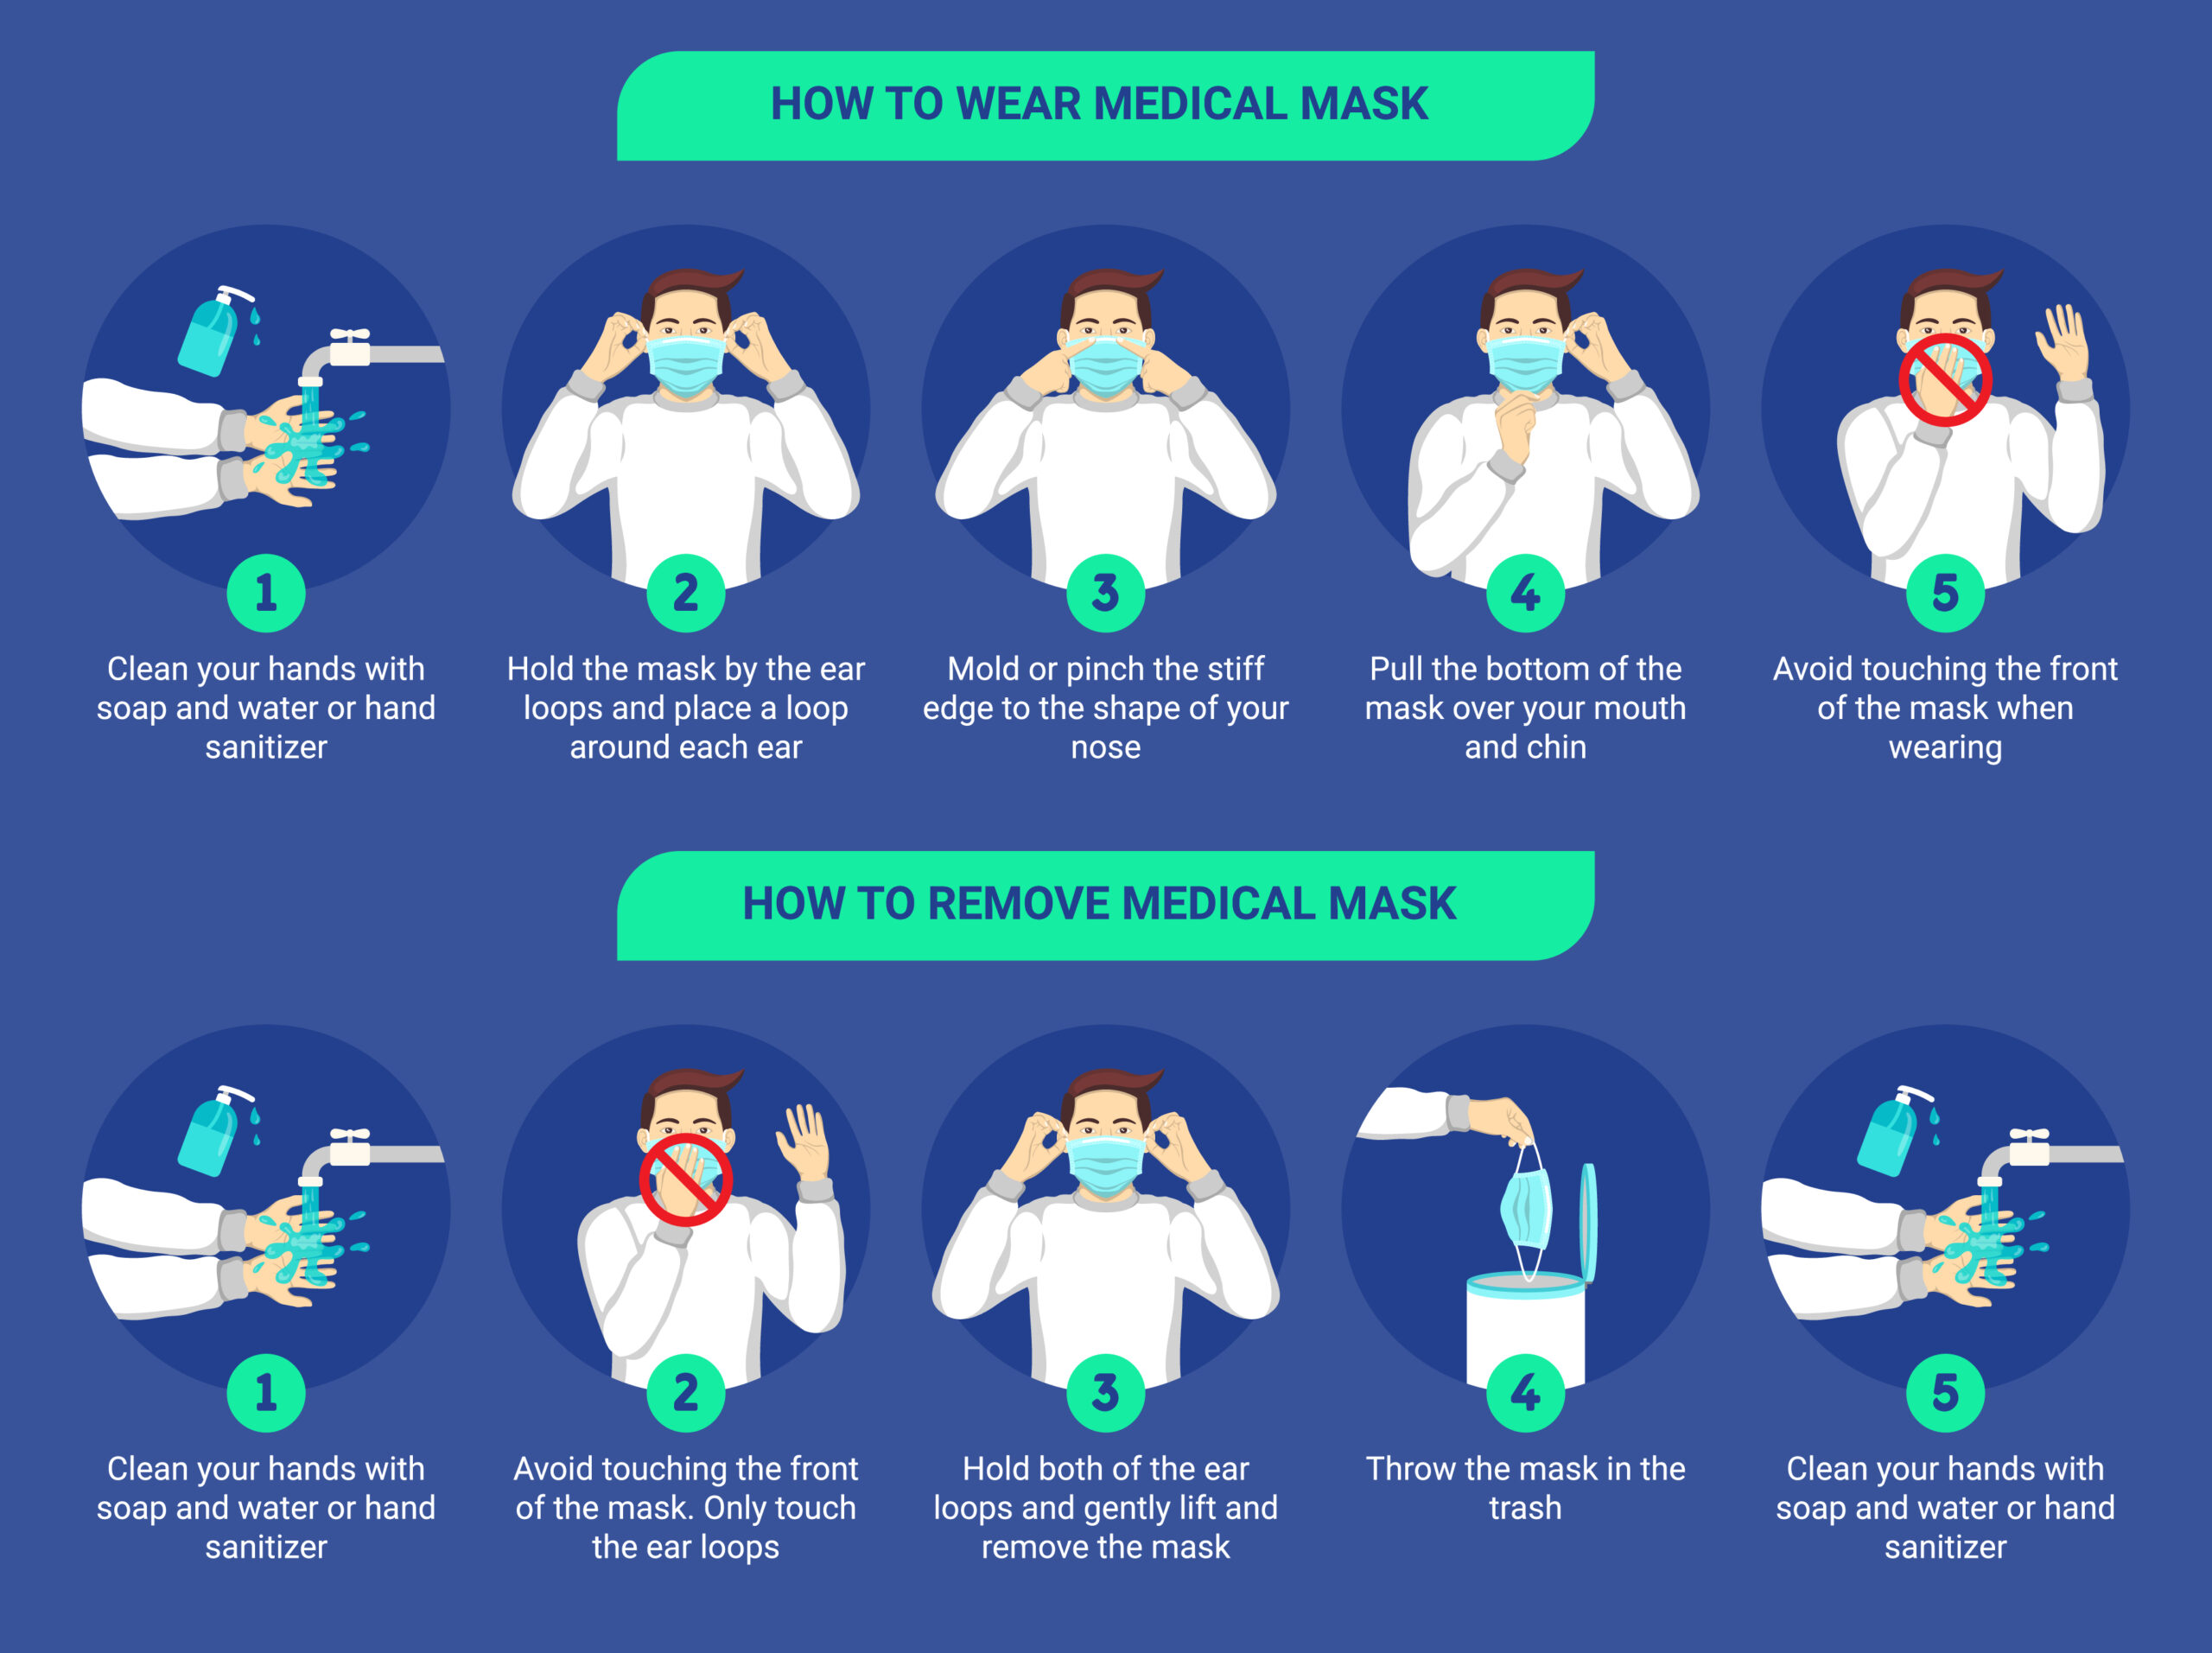 How to Properly Wear a Surgical Mask